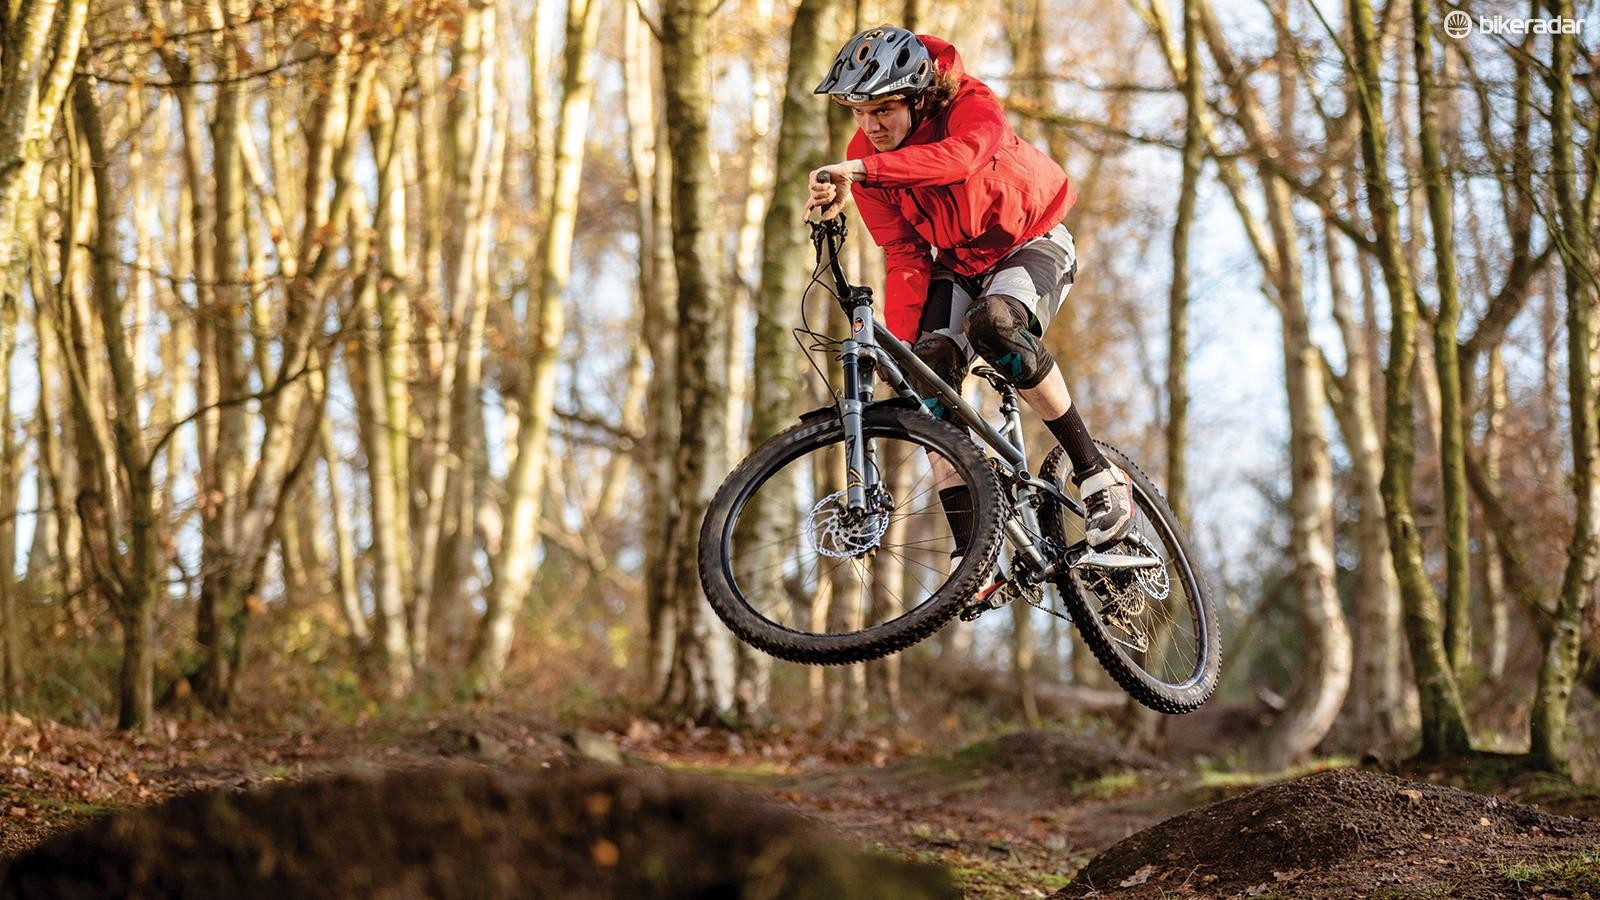 It'll shrink the thrill you get from previously scary situations, but that's hardly a criticism of a flat-out enduro bike